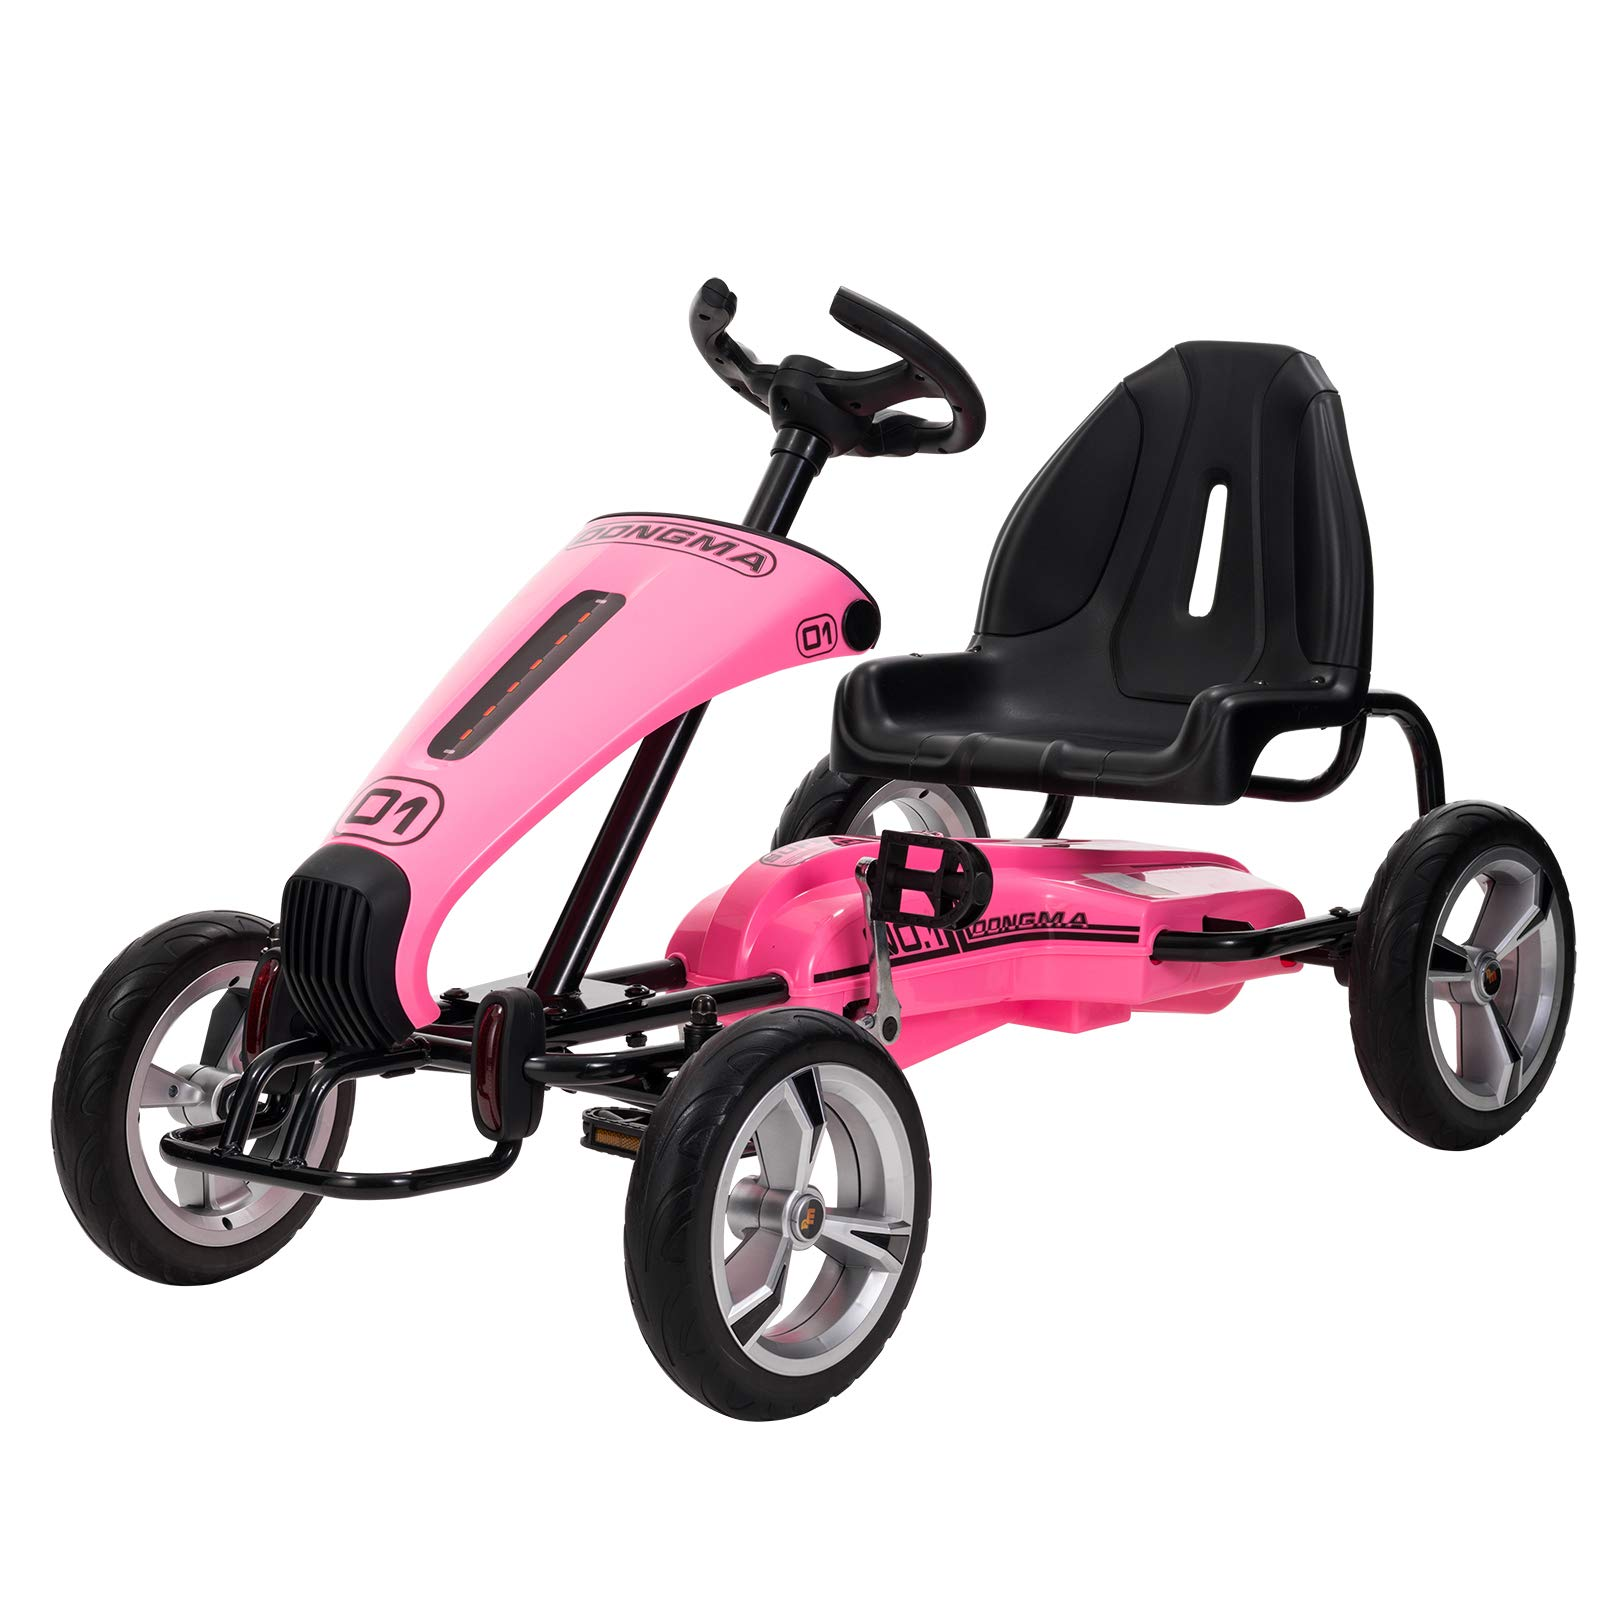 Uenjoy Pedal Go Kart Pedal Cars with Adjustable Seat, Sports Steering Wheel, Pink